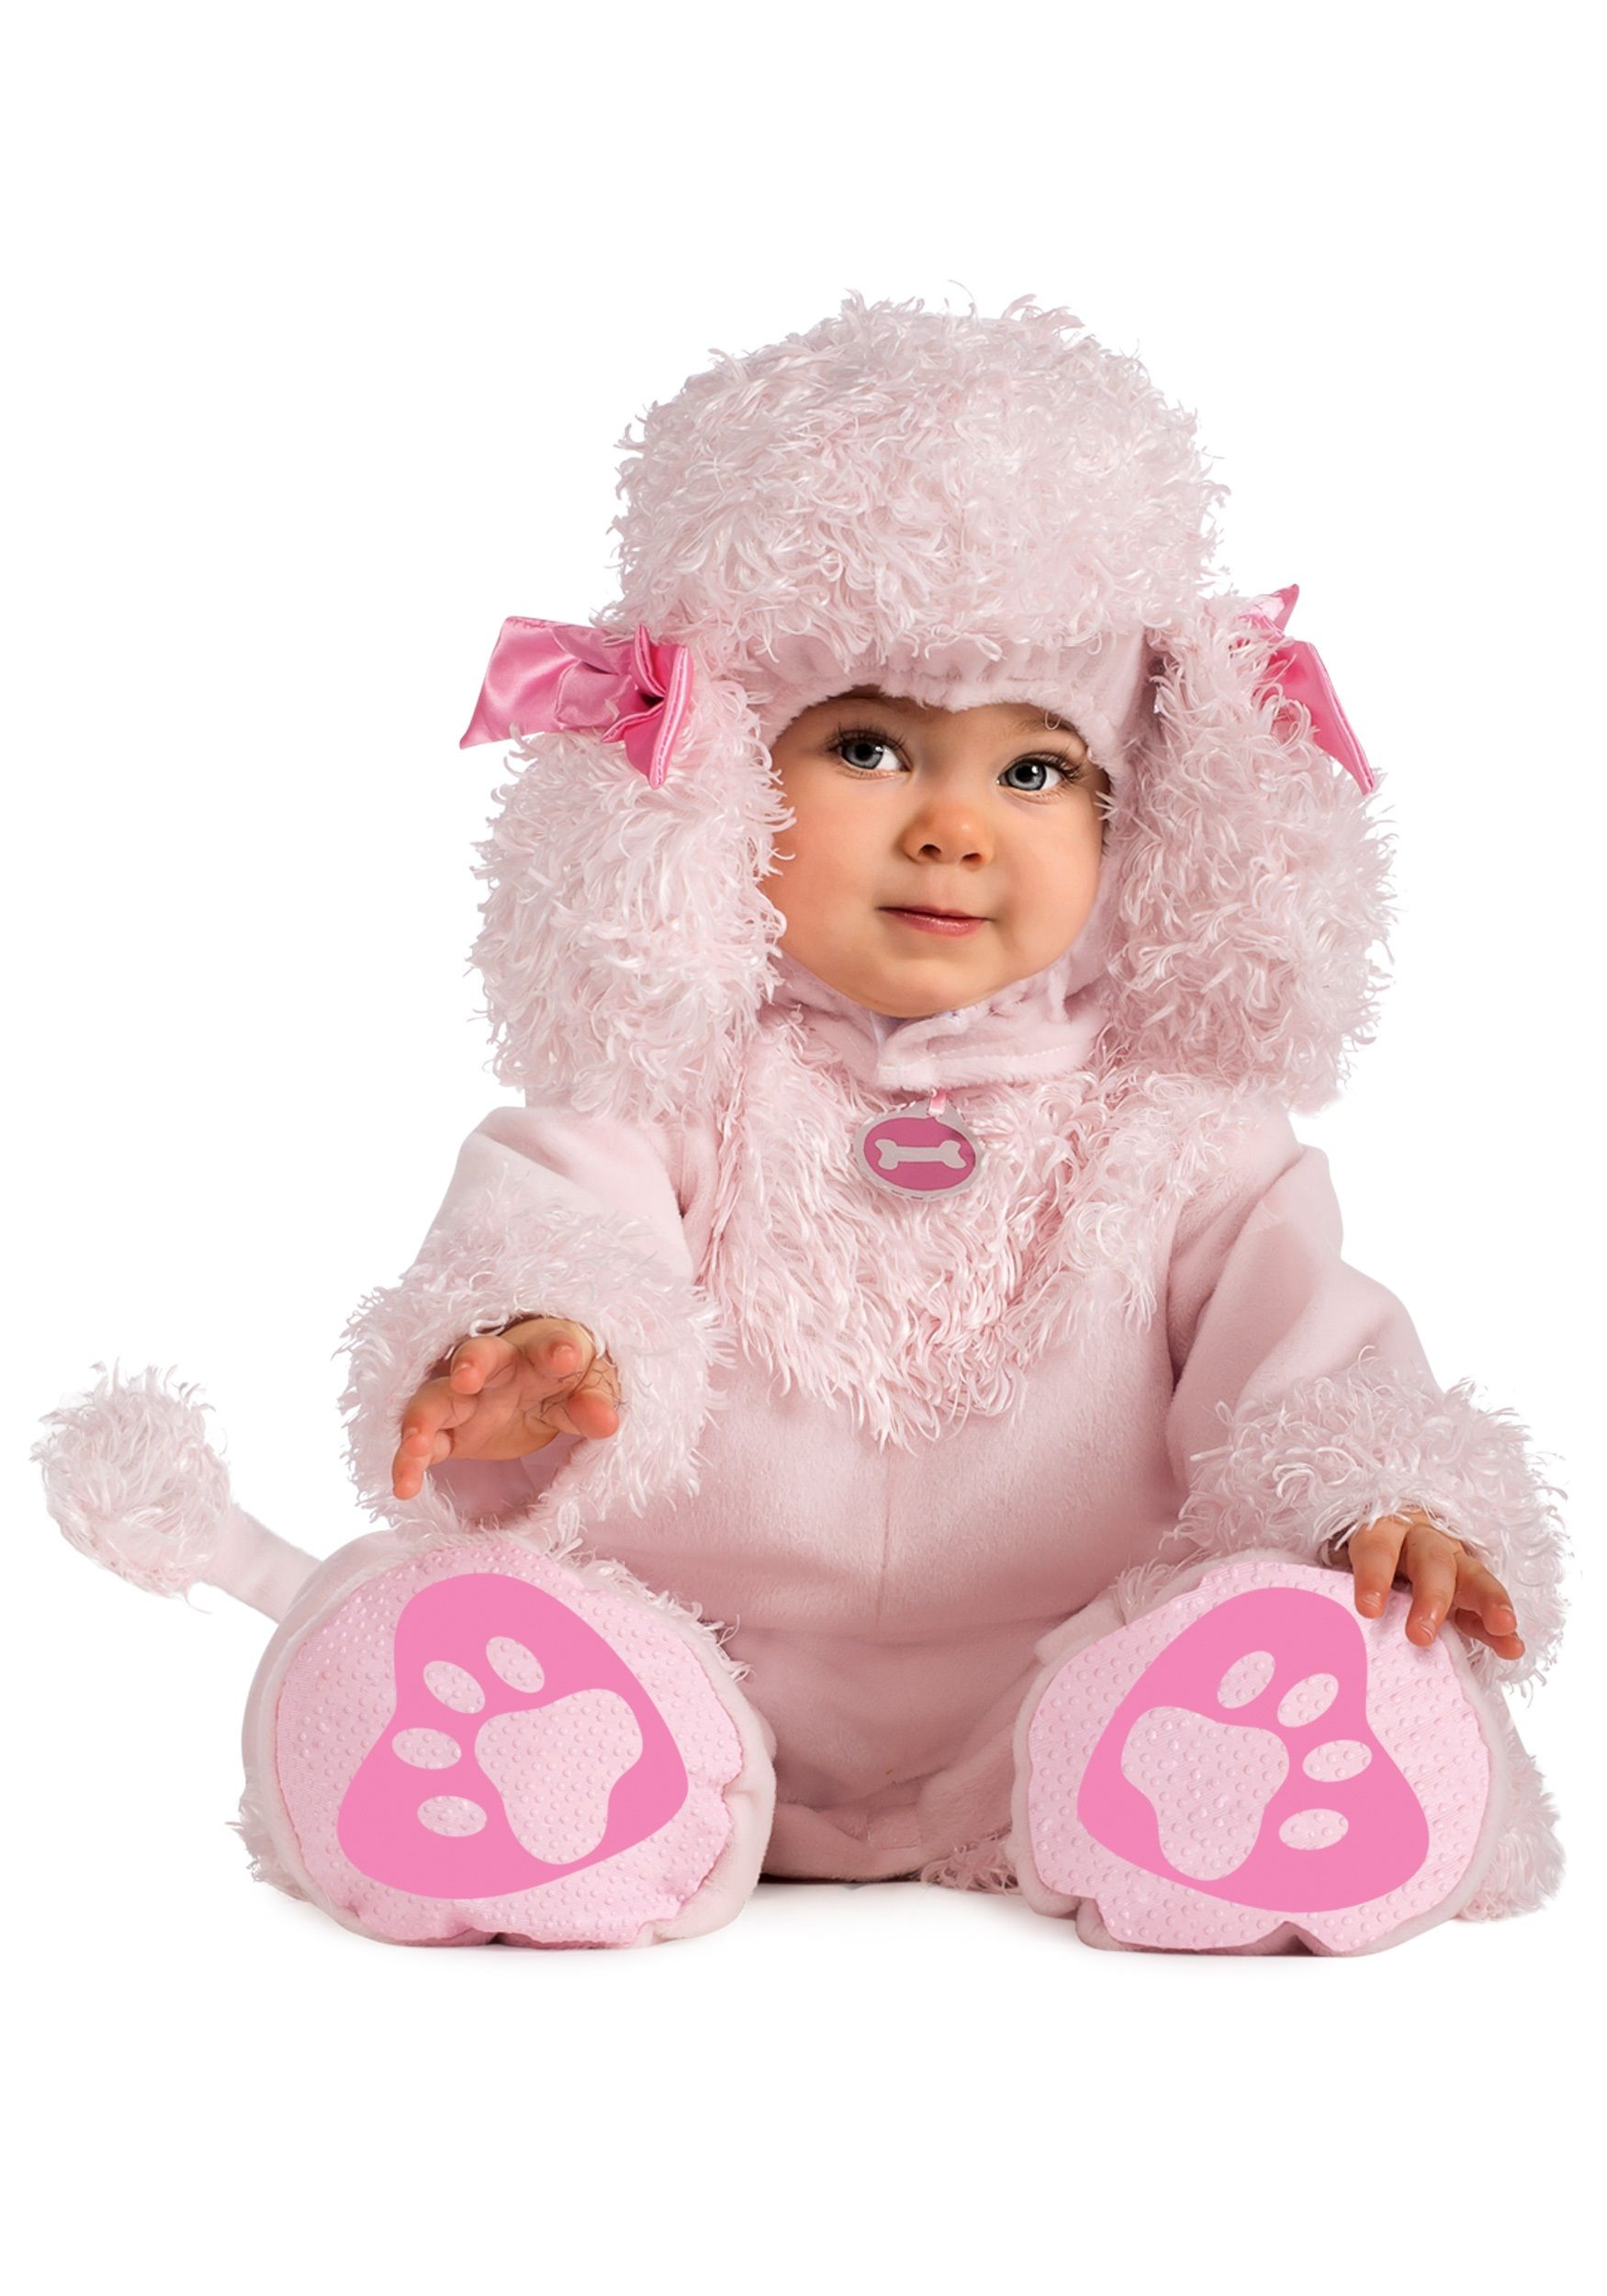 Adorable Baby Poodle Costume Includes A Soft Pink Romper With Tail Feet And Matching Fluffy Headpiece Cute Comfortable For Babys First